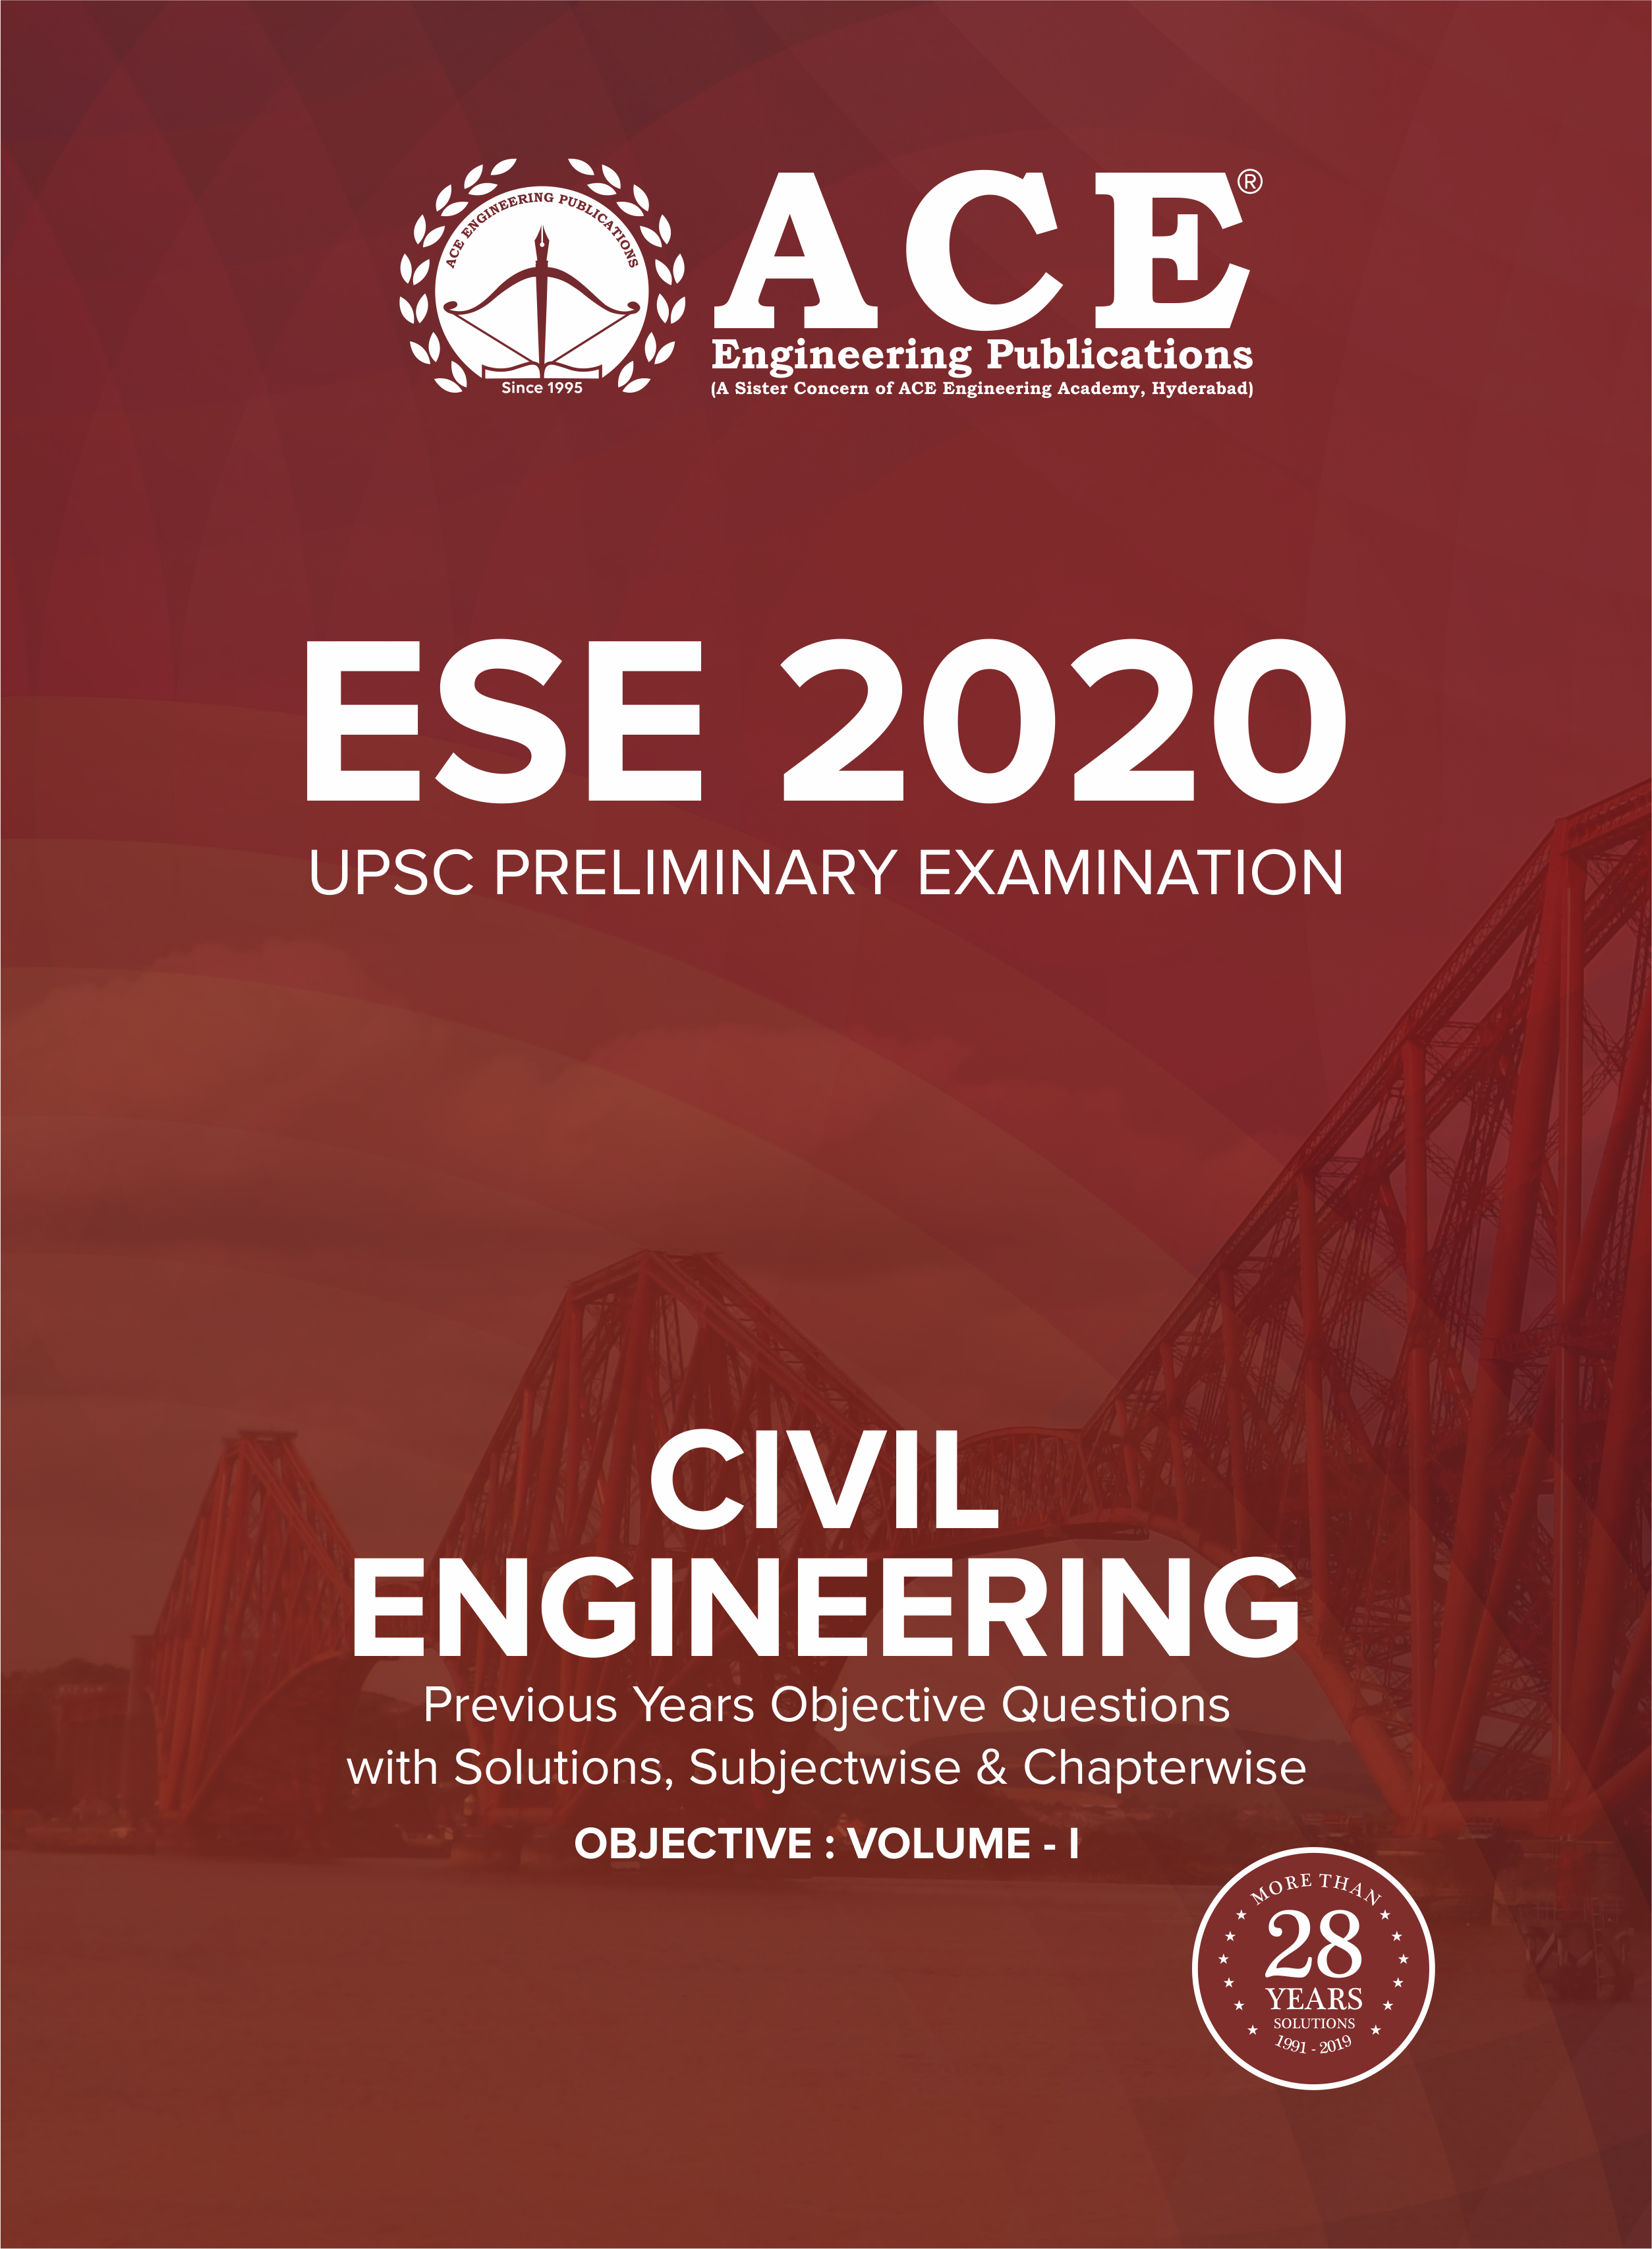 ESE-2020 UPSC Preliminary Examination questions with solutions Volume-1 for Civil Engineering